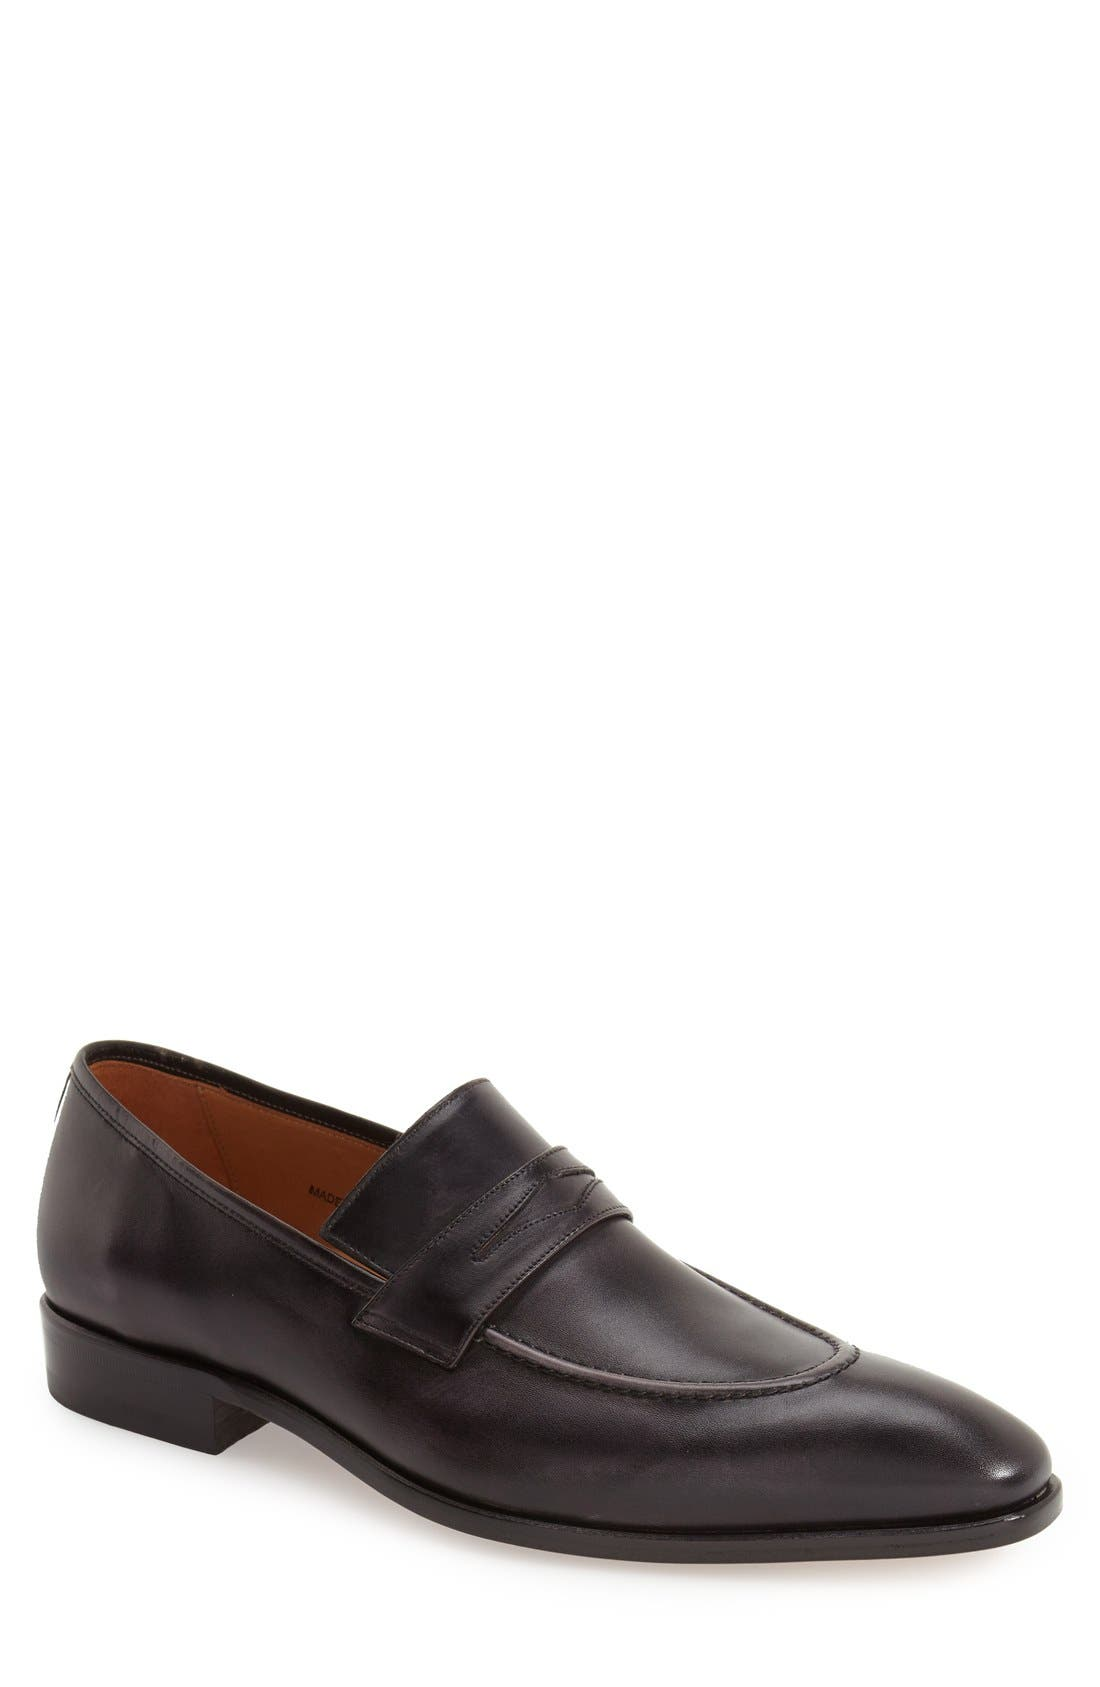 'Bione' Penny Loafer,                         Main,                         color,